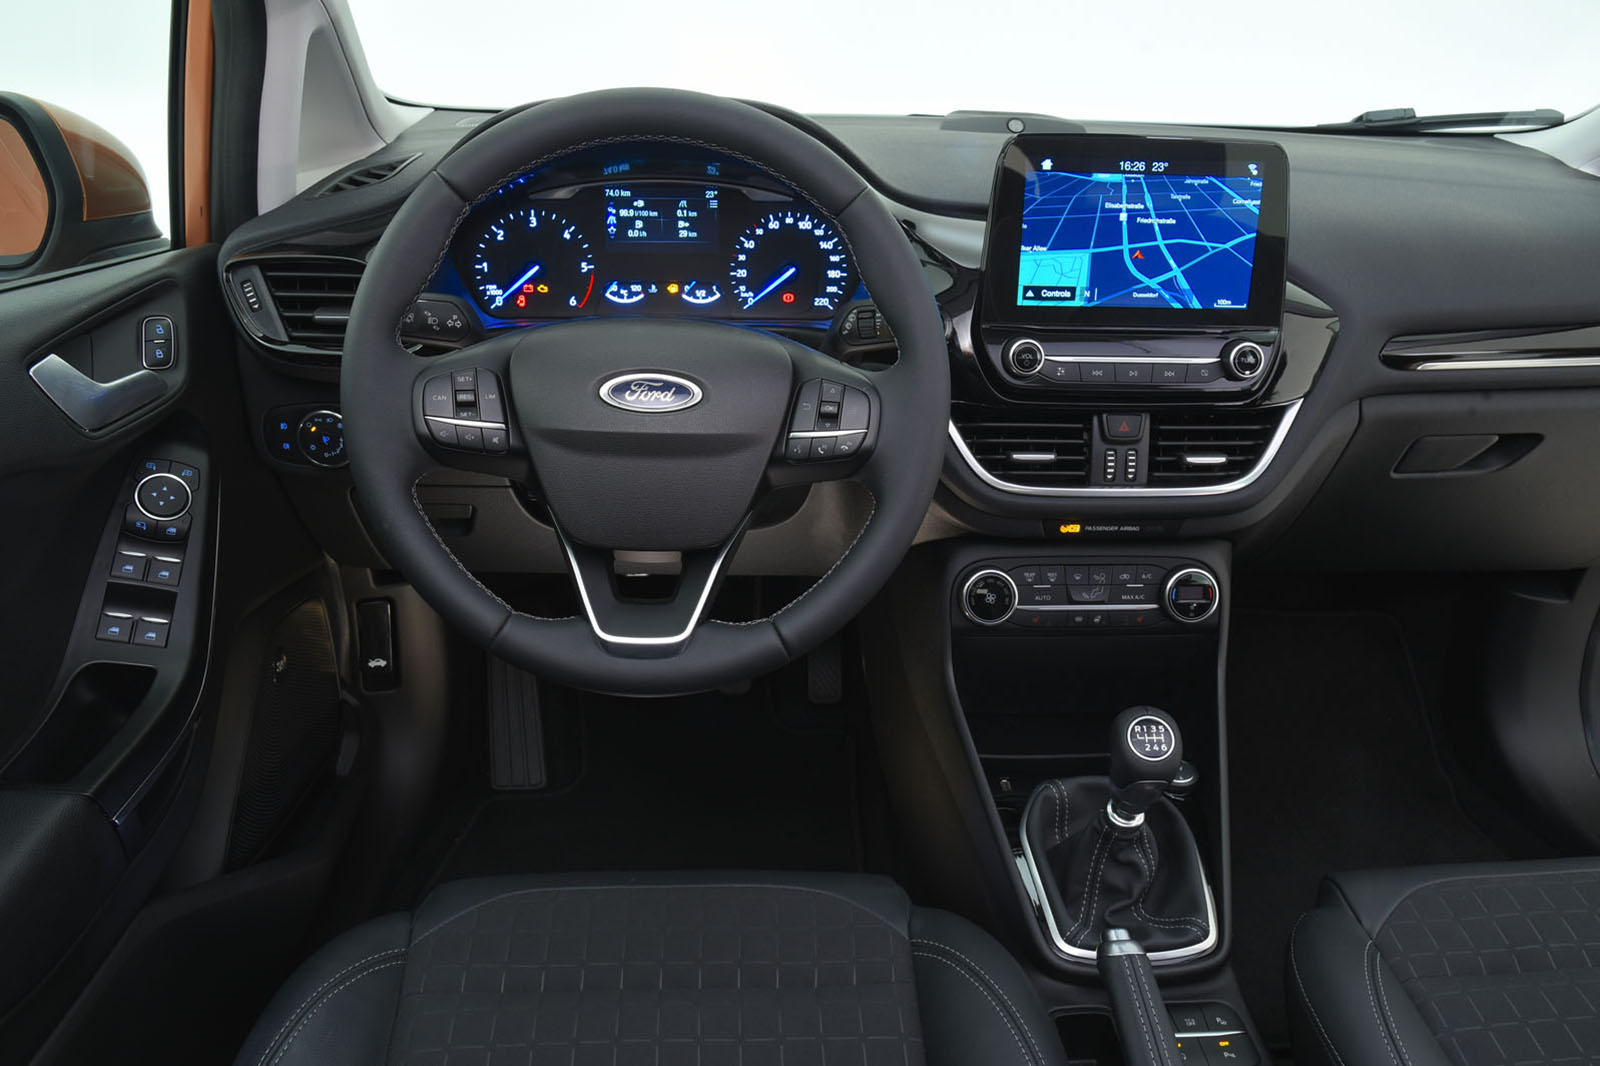 81653329 in addition Overview together with Ford Sync 3 Announced in addition The 2002 Ford Escape V6 Wiring Diagram For Charging System Radio On besides 1994 Prelude vtec. on ford kuga audio system